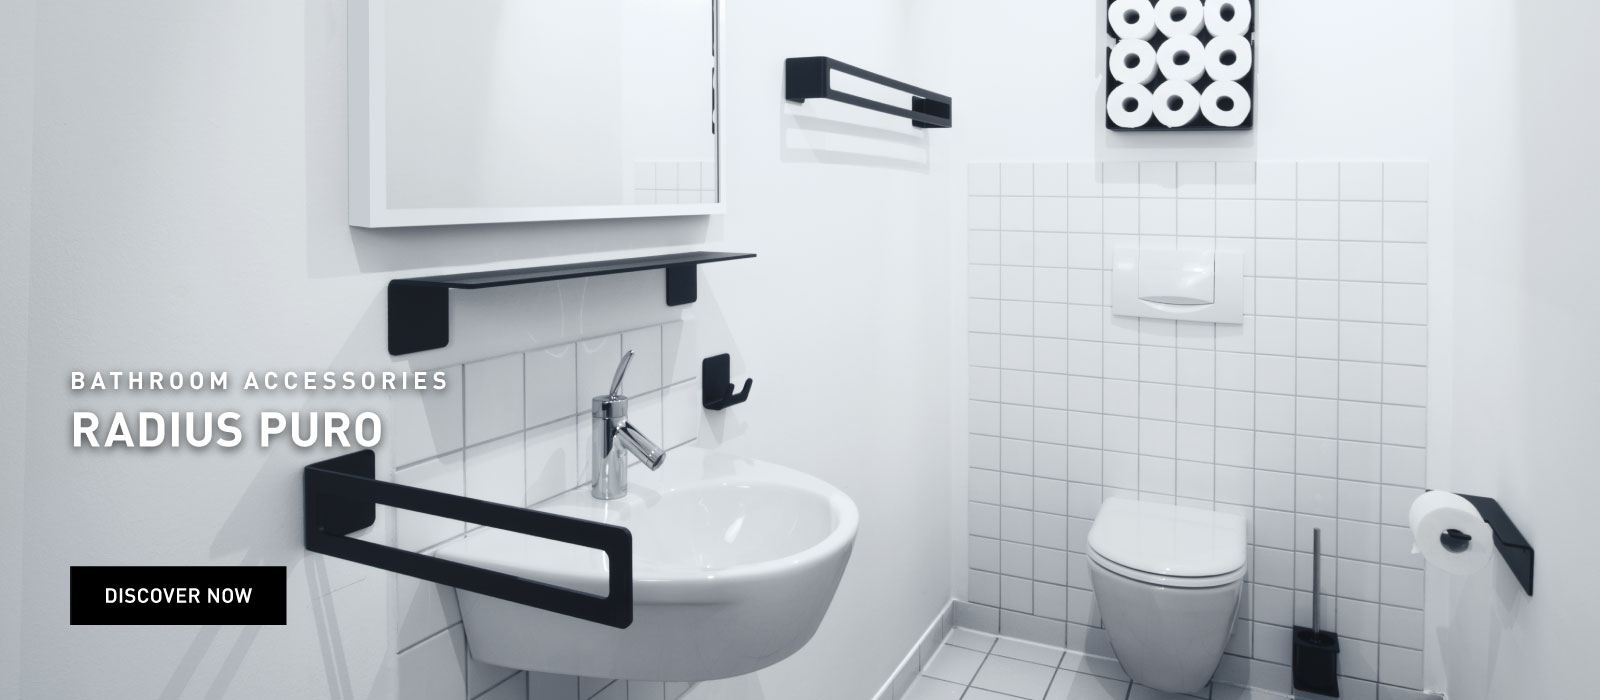 Bathroom accessories RADIUS Puro